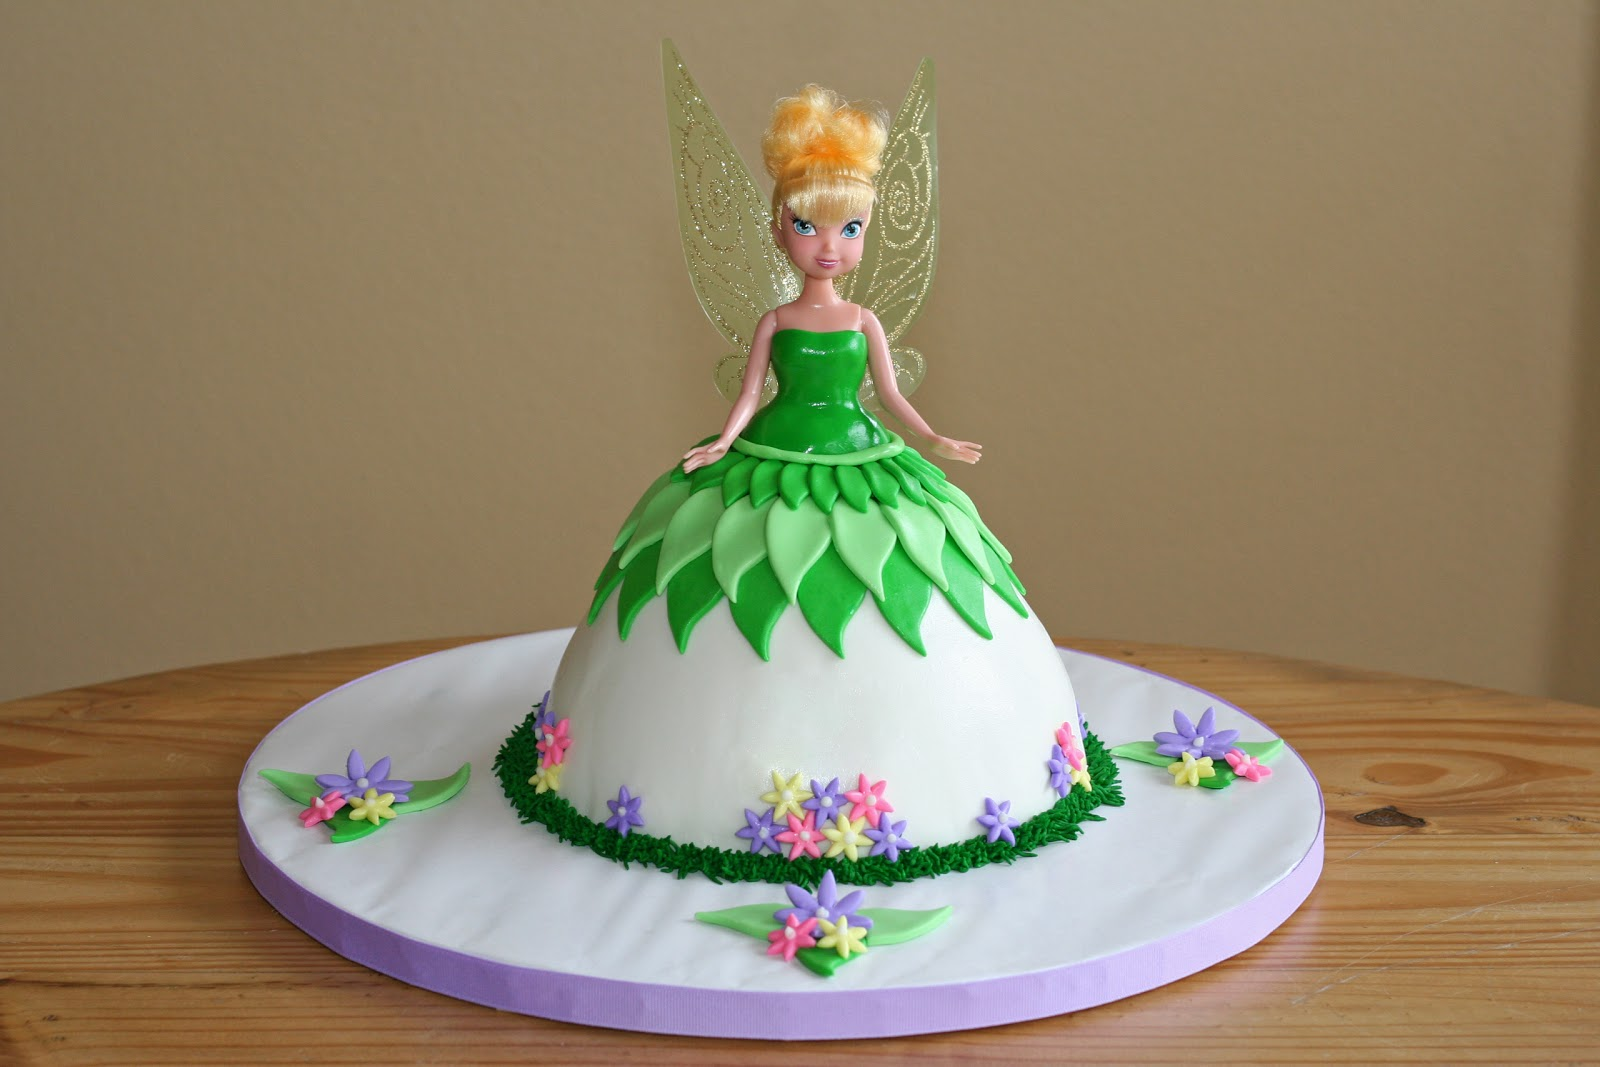 Cakes by Nicola: Tinkerbell